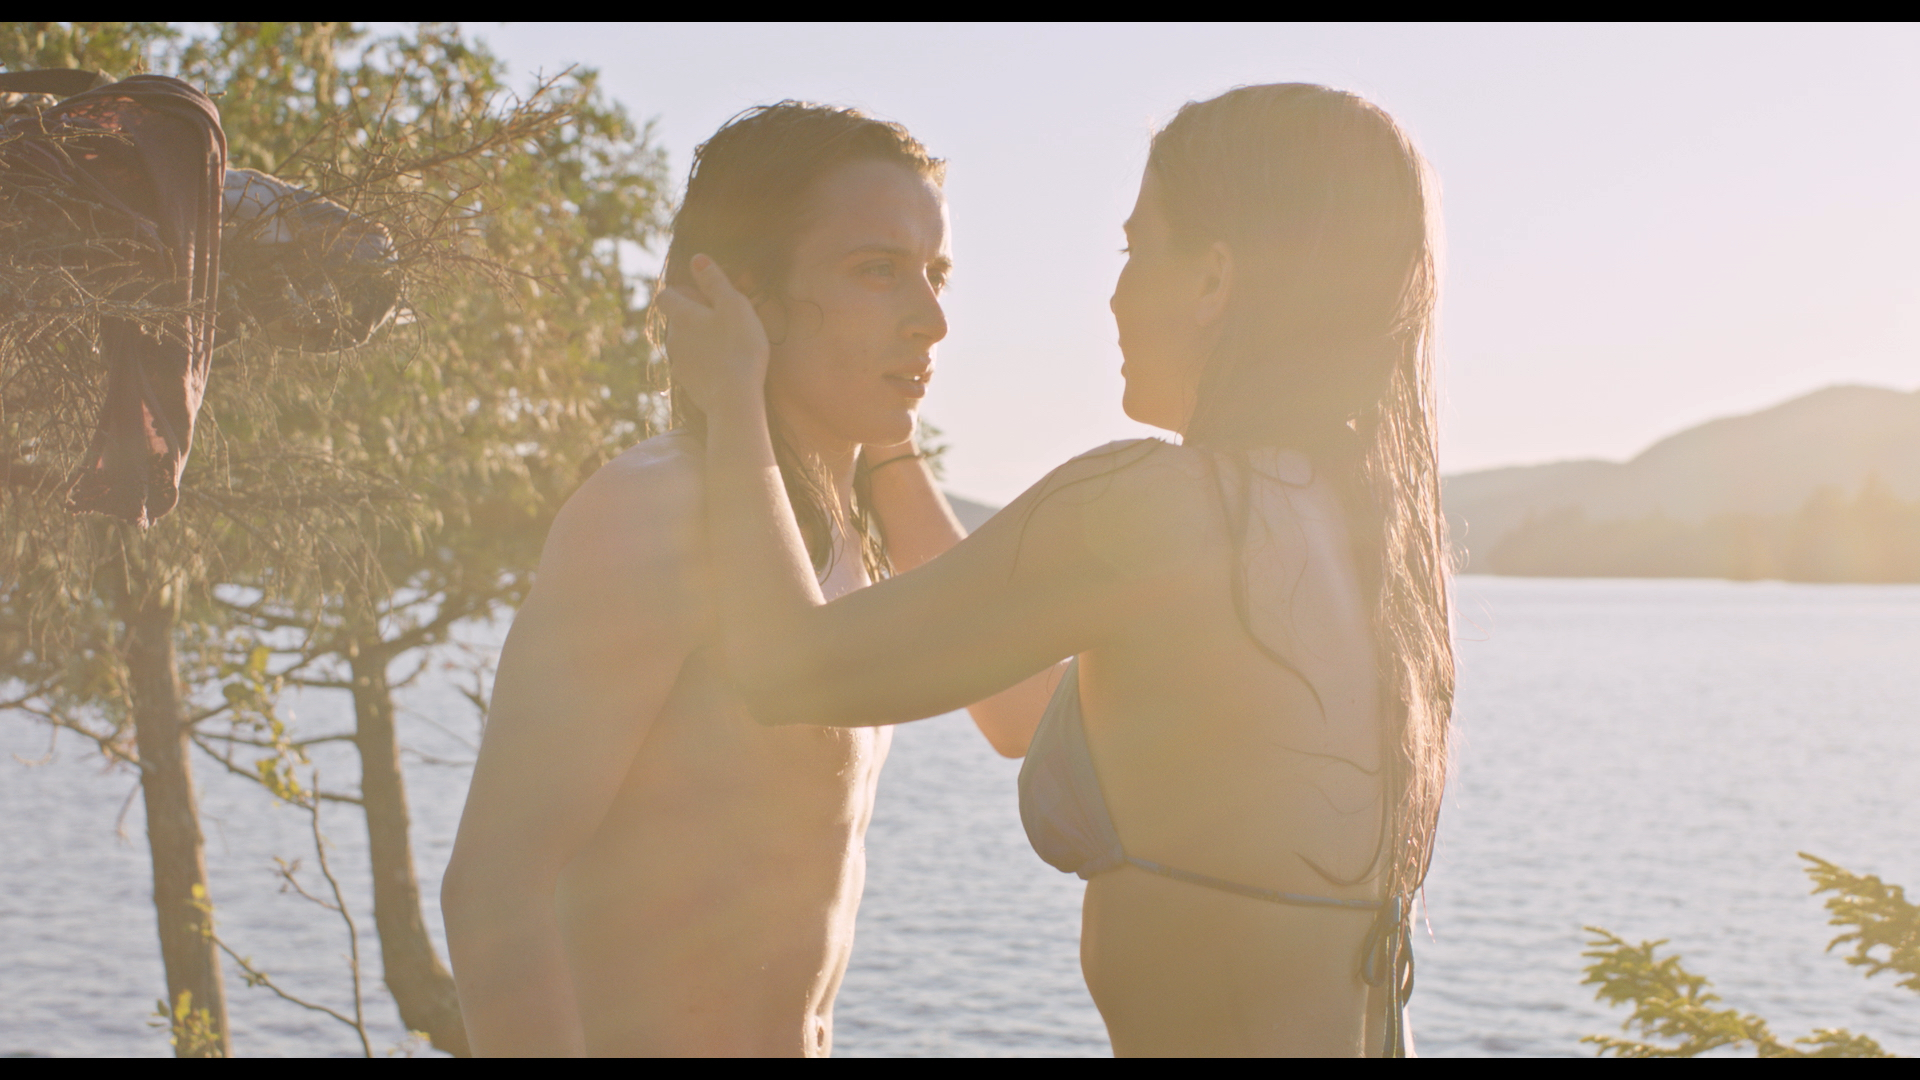 Rory Culkin and Isabelle McNally - Production Still - Courtesy of Grackfilms